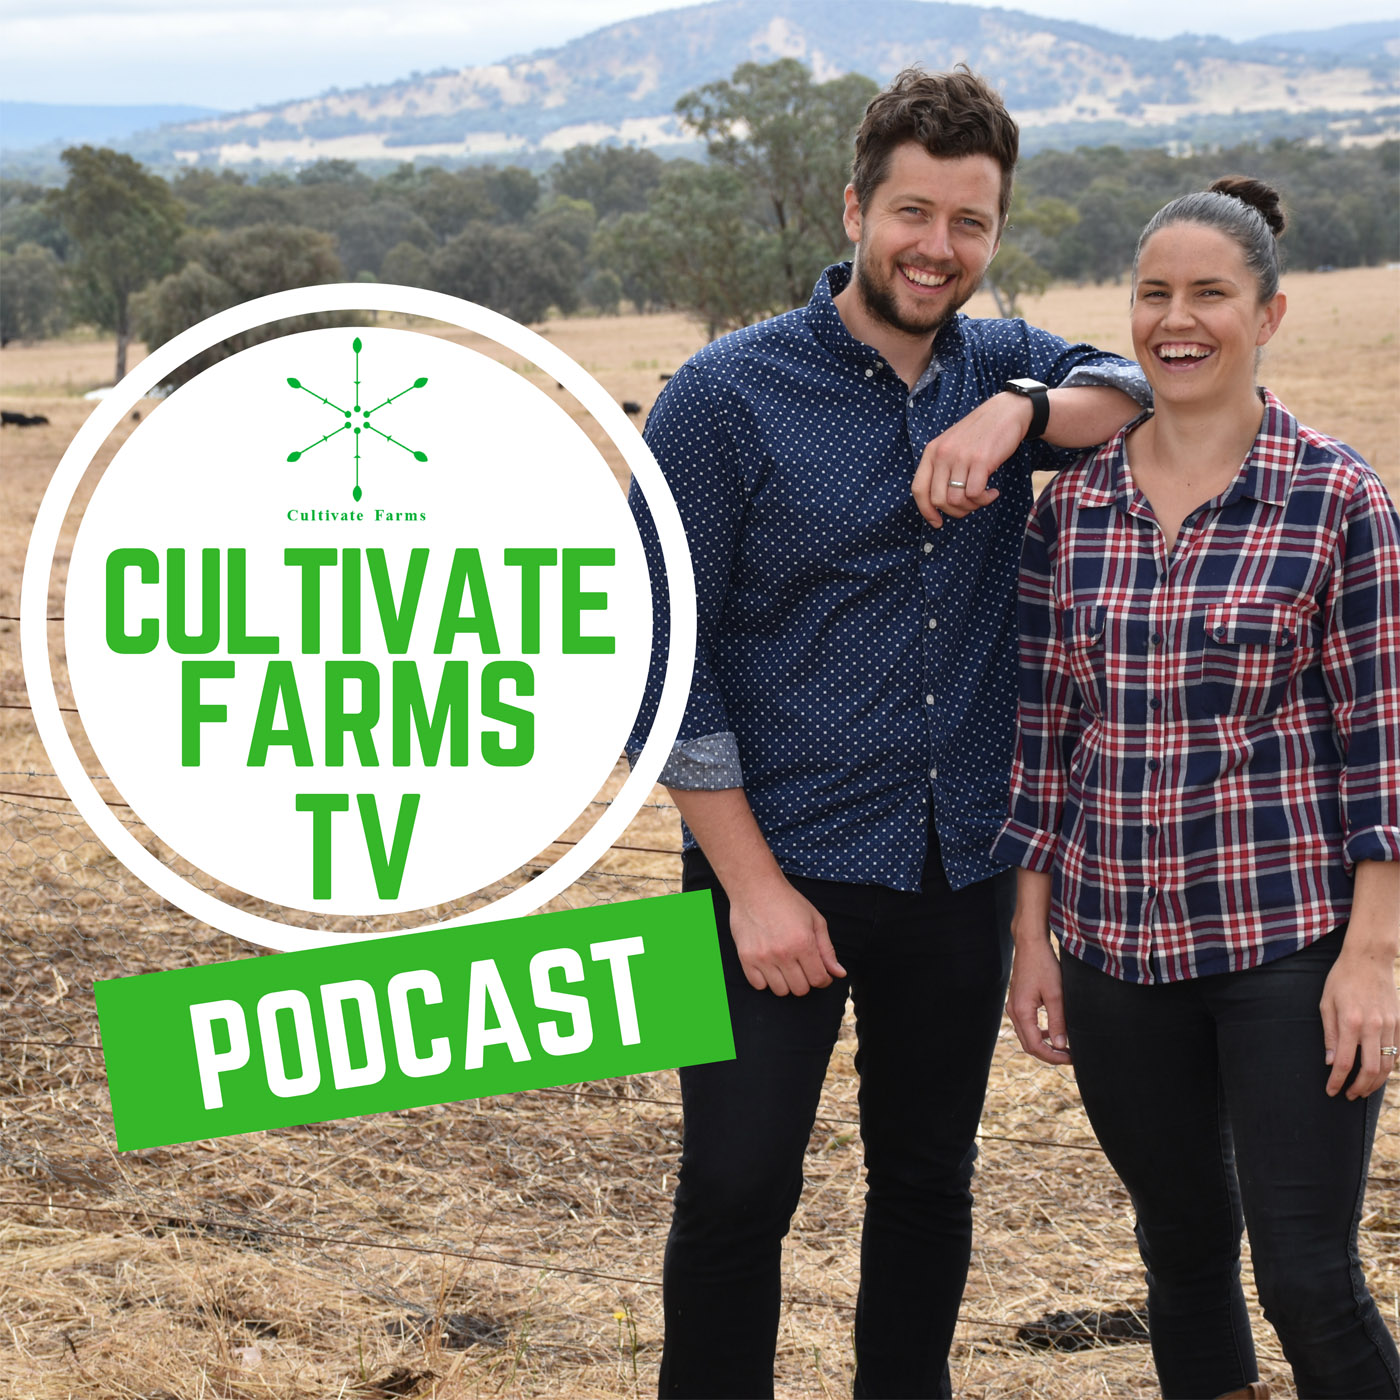 The cultivatefarms's Podcast